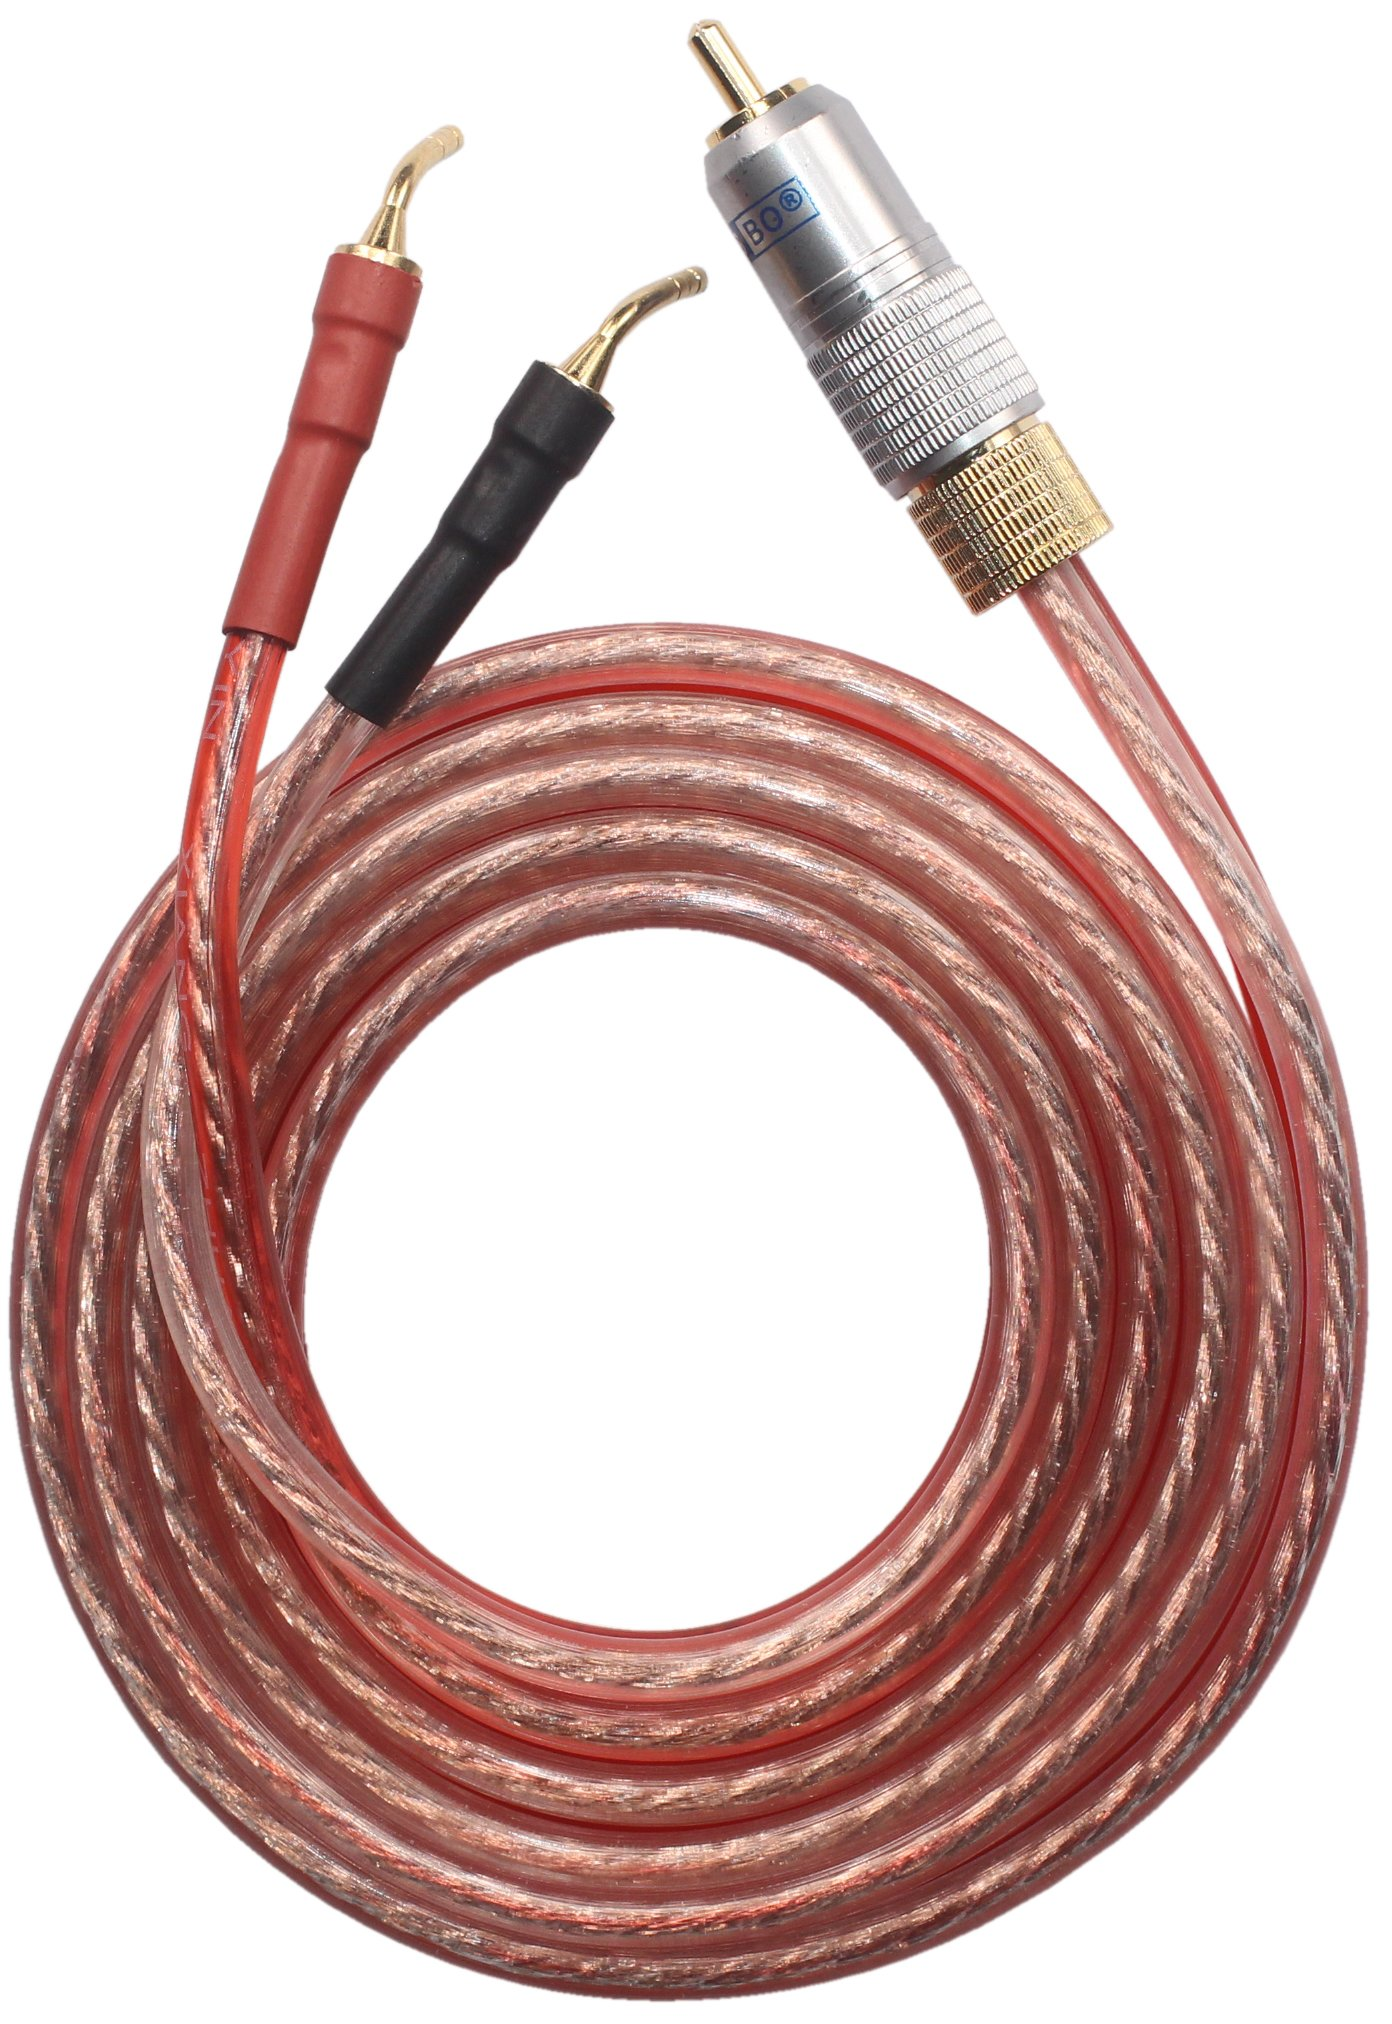 KZ-RZ Speaker wire pair with RCA Male to 2 pair Pin Type Plug(2 RCA Plugs & 4 Pin Plugs), OFC Wire, KZ-RZ (3M(9.84ft))